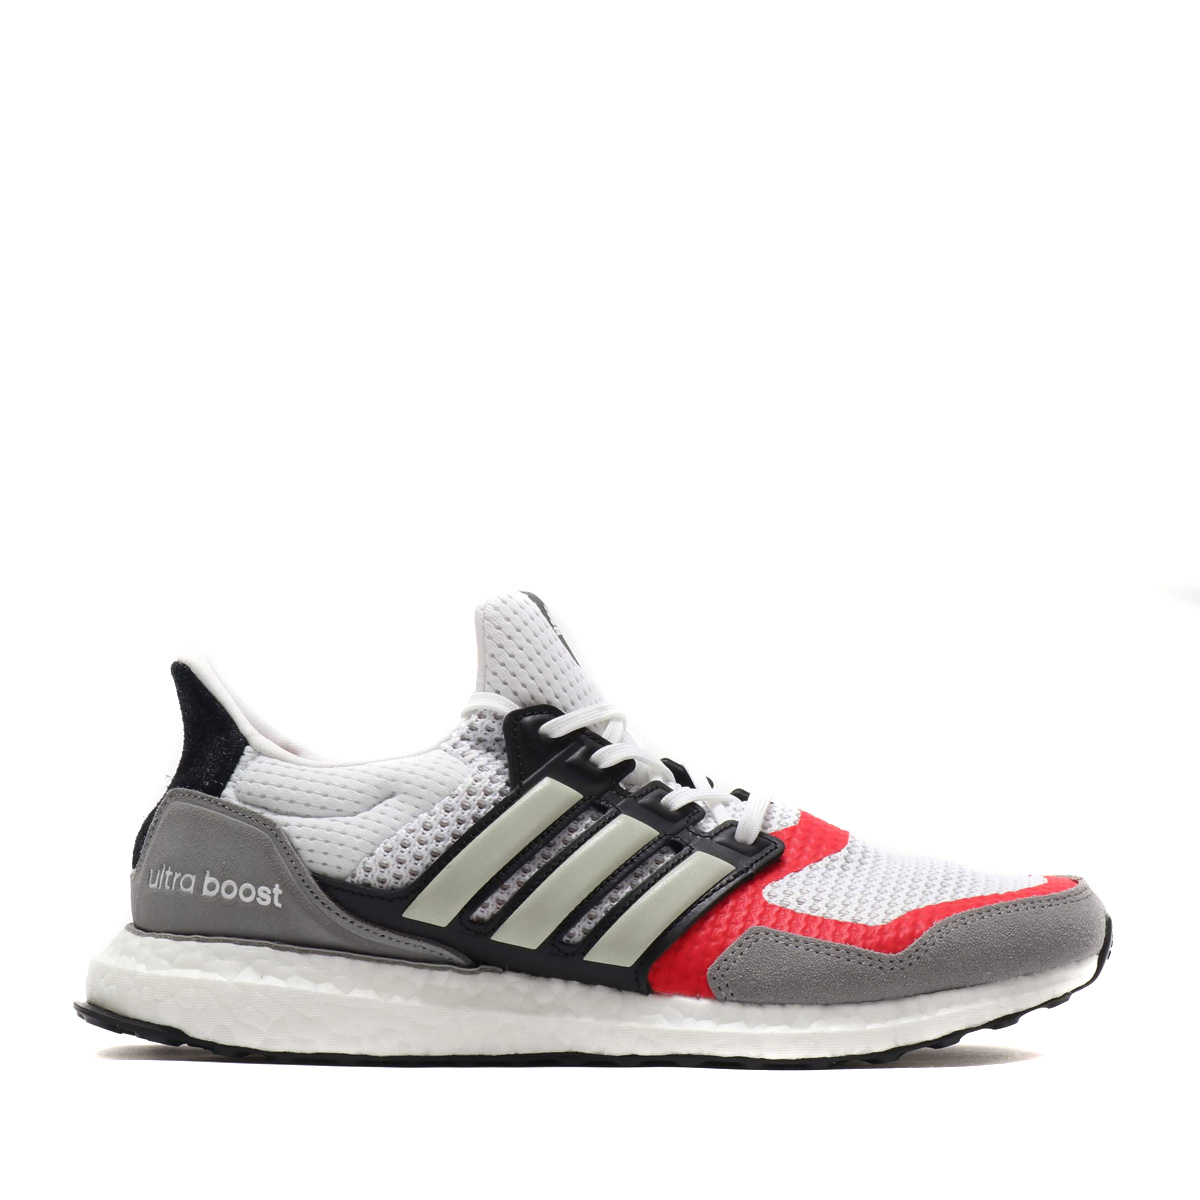 premium selection b7048 37d33 adidas UltraBOOST S & L (RUNNING WHITE/GREY TWO/SCARLET) (Adidas ultra  boost S & L)